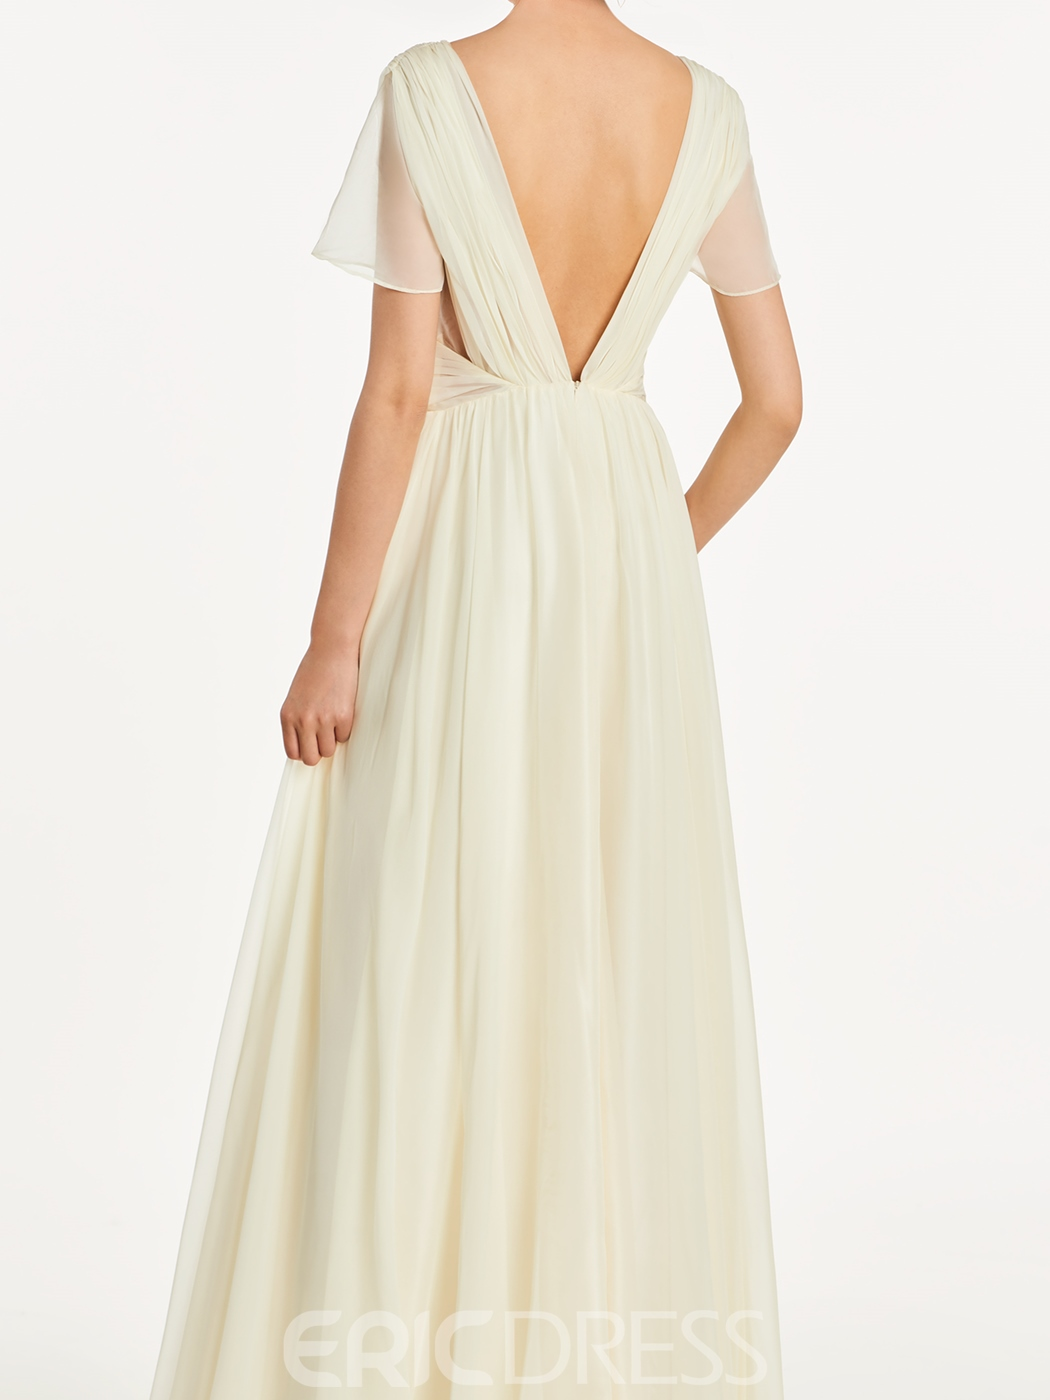 Ericdress V Neck Short Sleeves A Line Backless Bridesmaid Dress